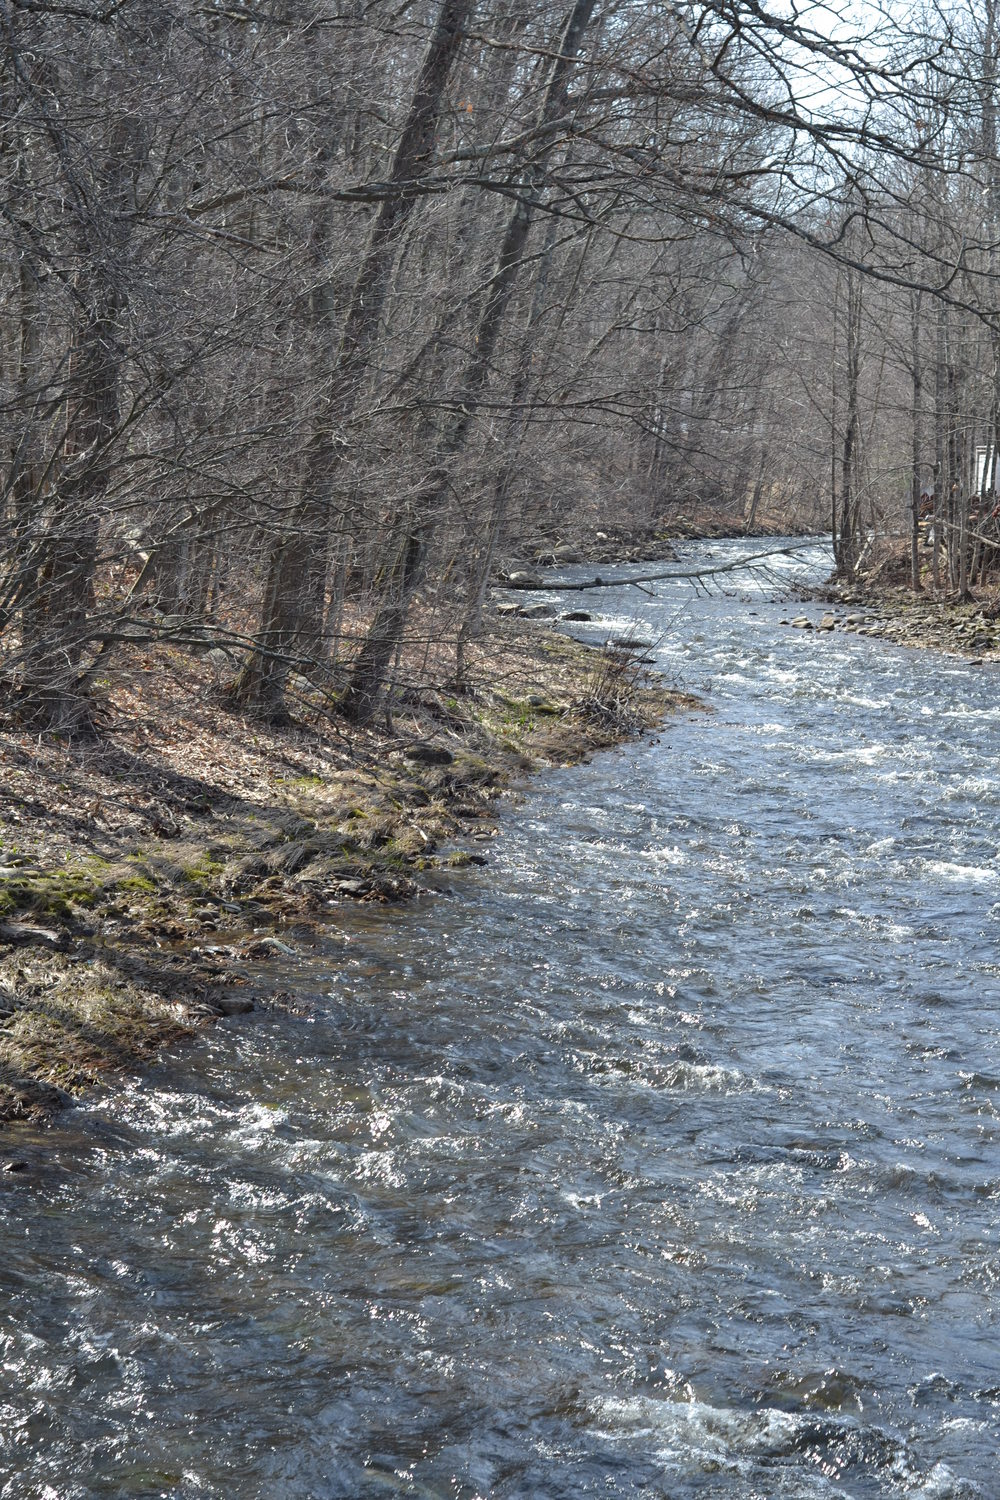 At our facilities in New Hampshire, we are surrounded by the beauty of nature and we work hard everyday to preserve it. Here is a shot of the Minnewawa River that runs next to our building.